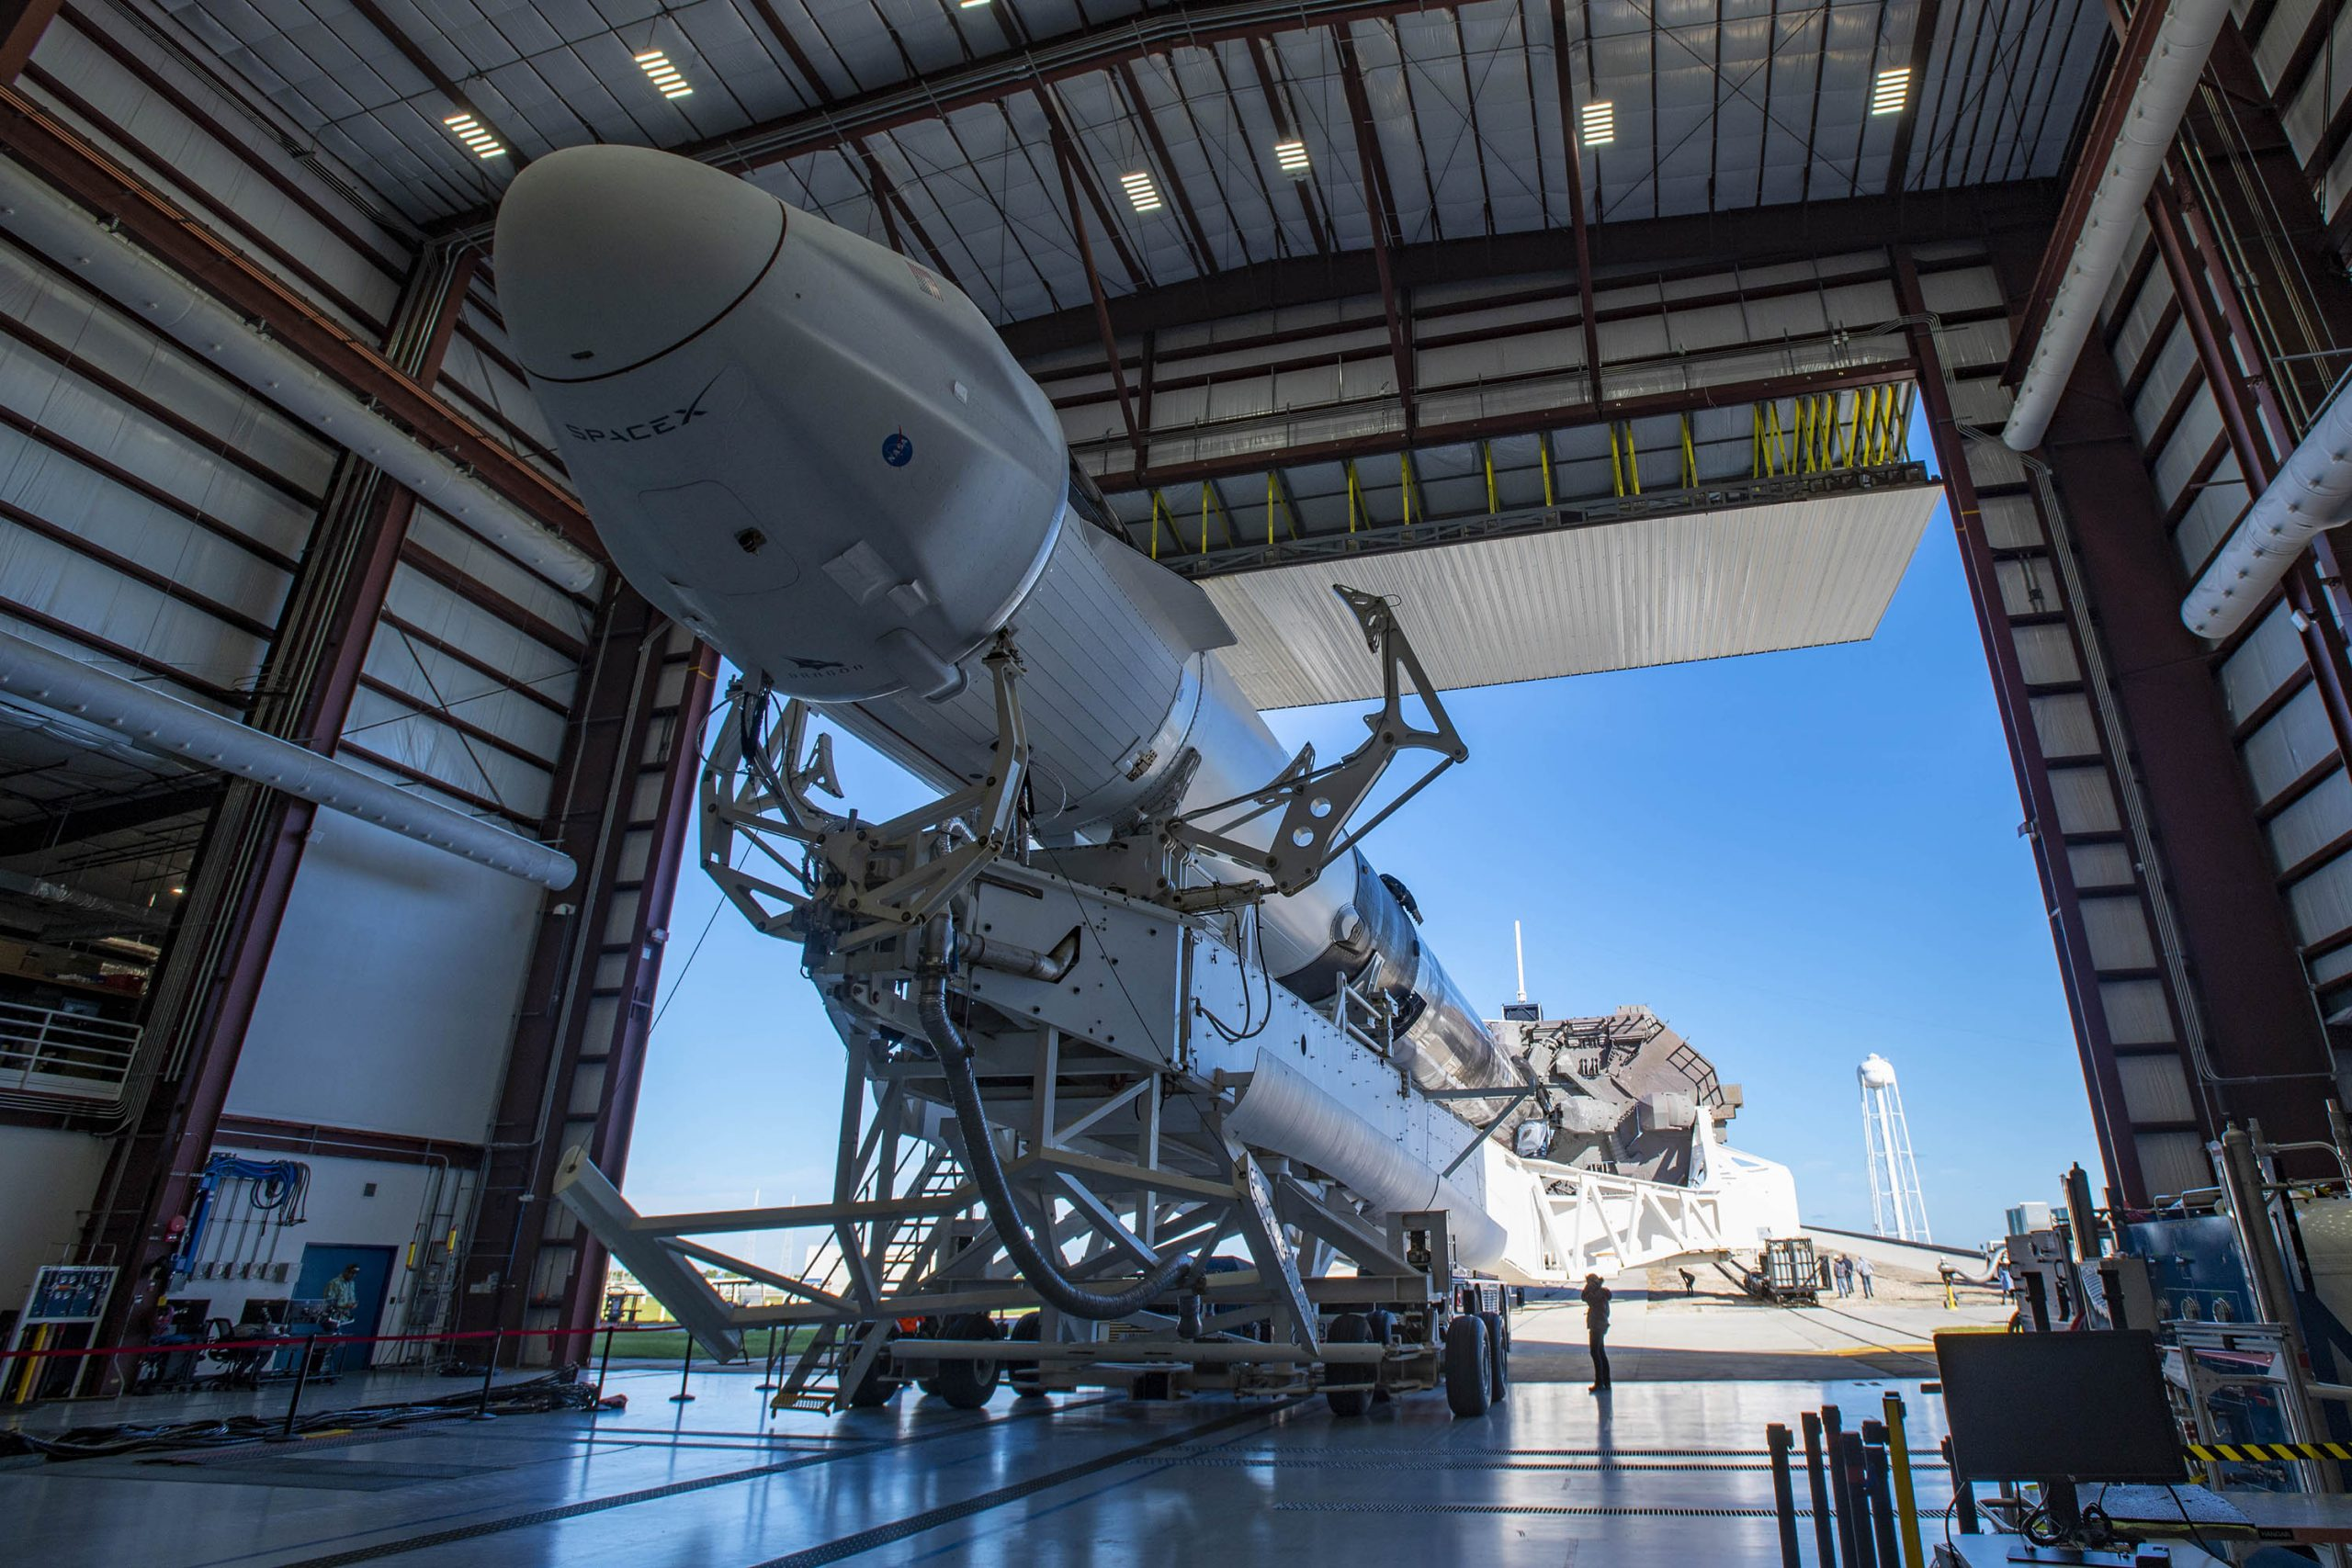 Falcon 9 and Cargo Dragon prepare to roll out to the launch pad for CRS-21.